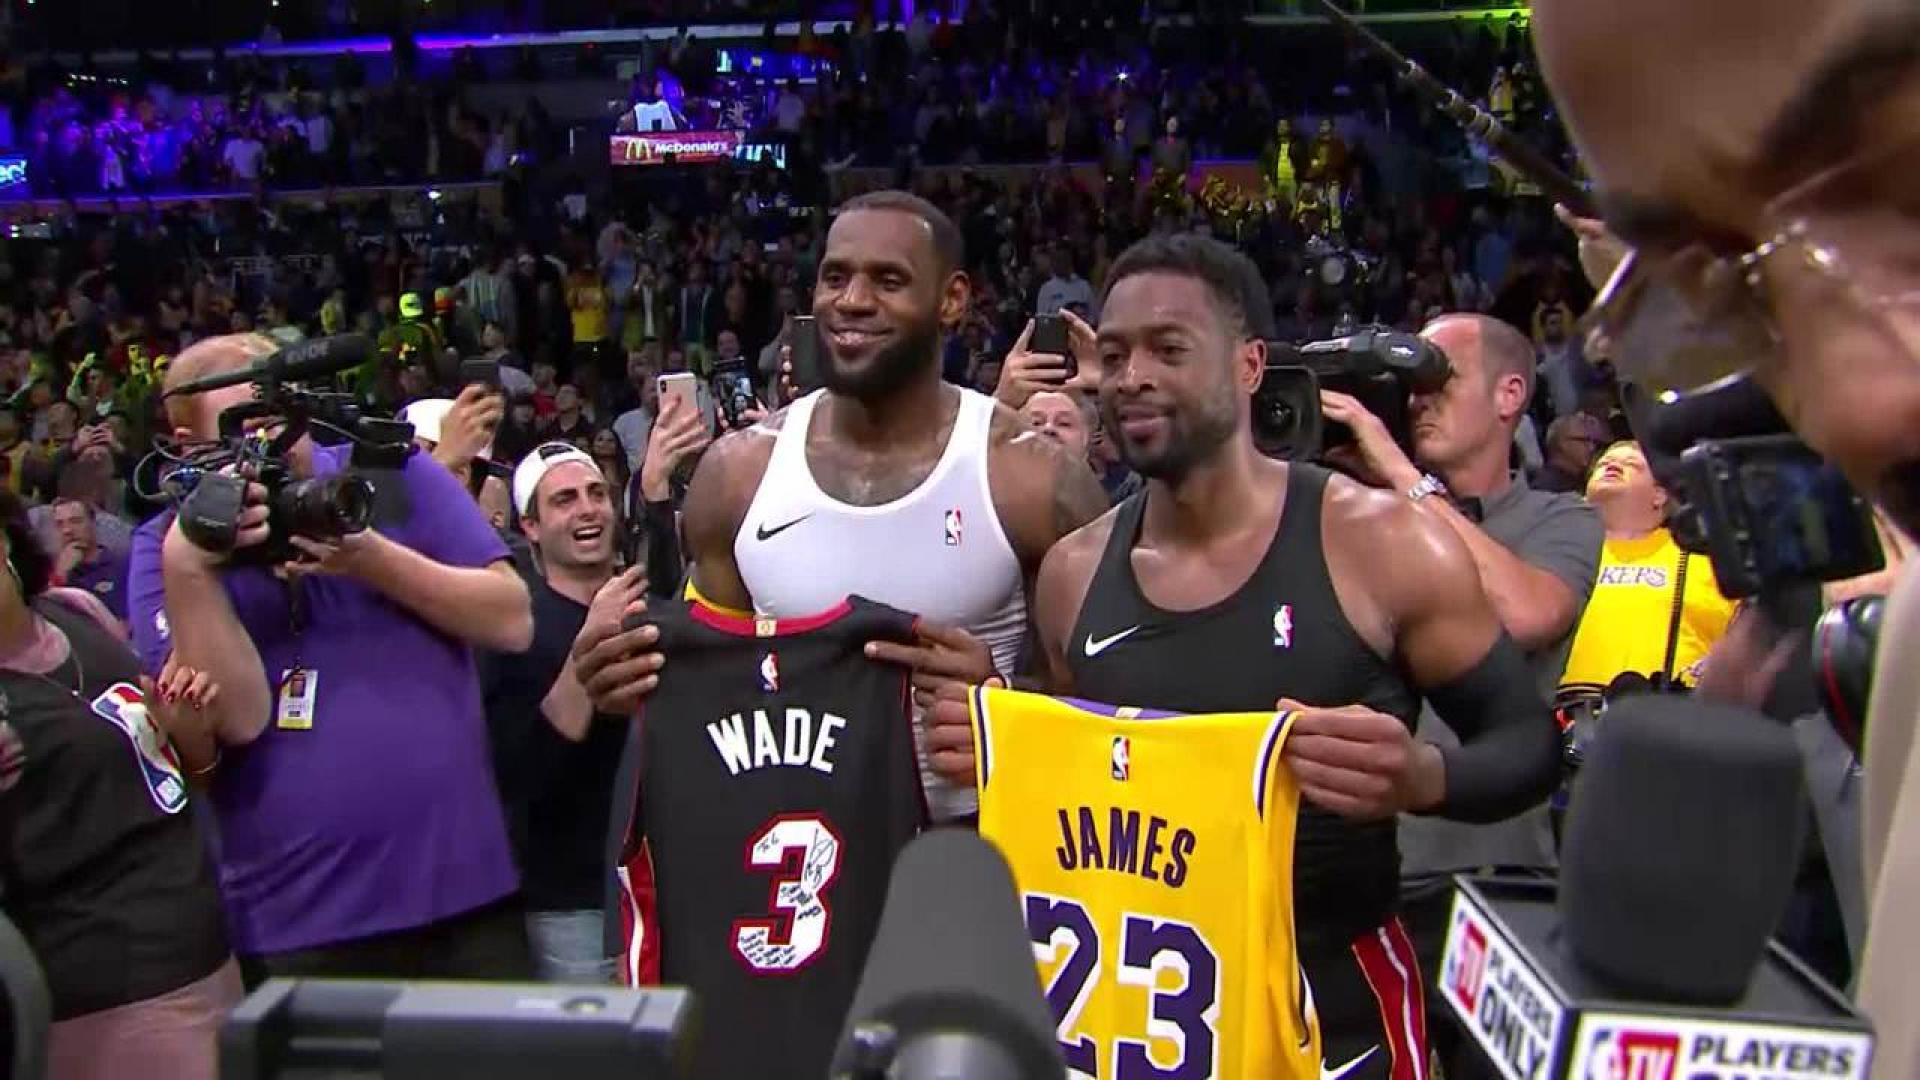 ae8c969fca9 LeBron James and Dwyane Wade Embrace